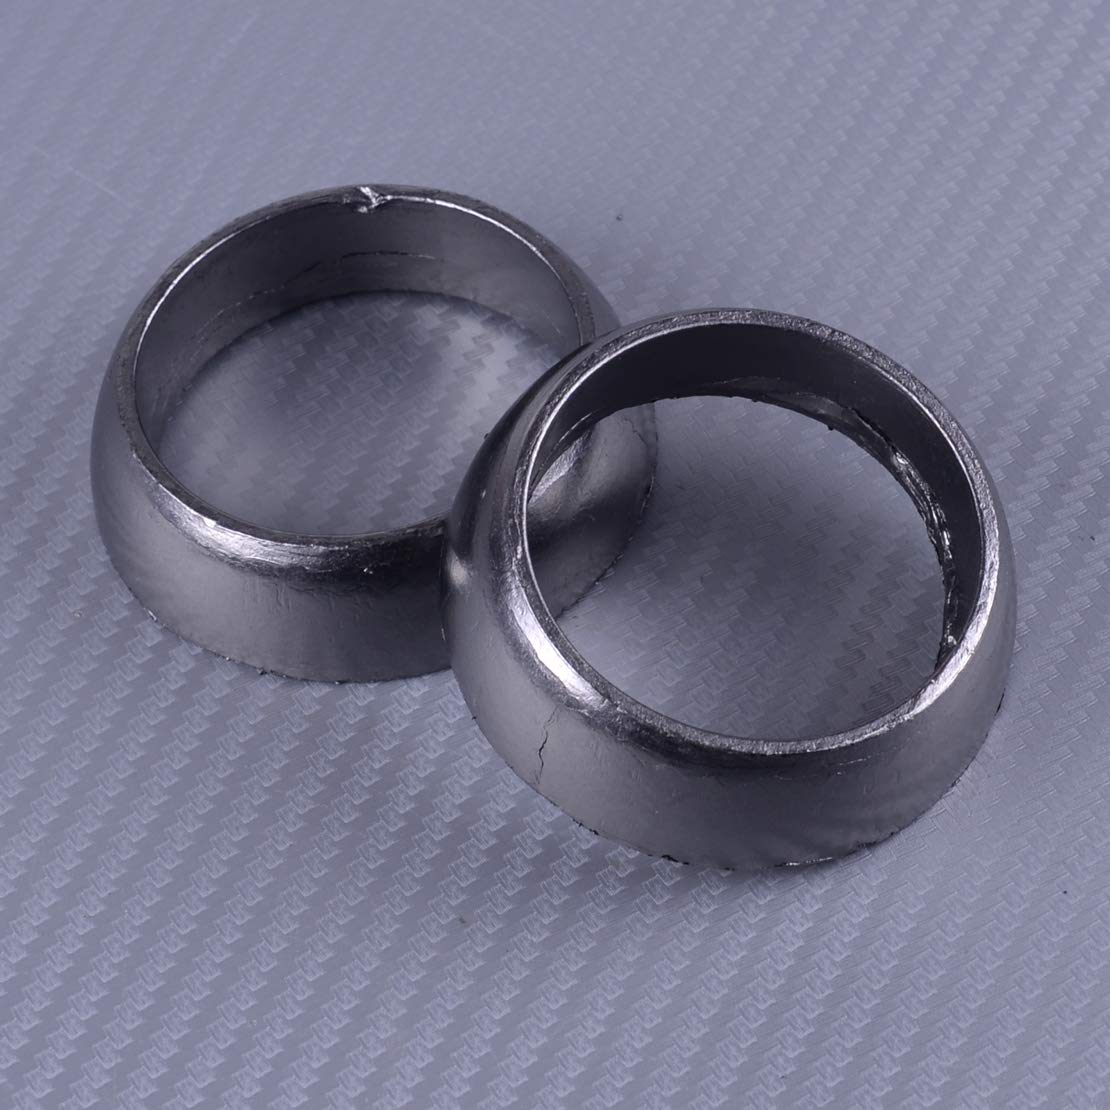 2pcs Twin Exhaust Donut Seal Gasket Fit for Polaris Sportsman 600 700 800 3610047